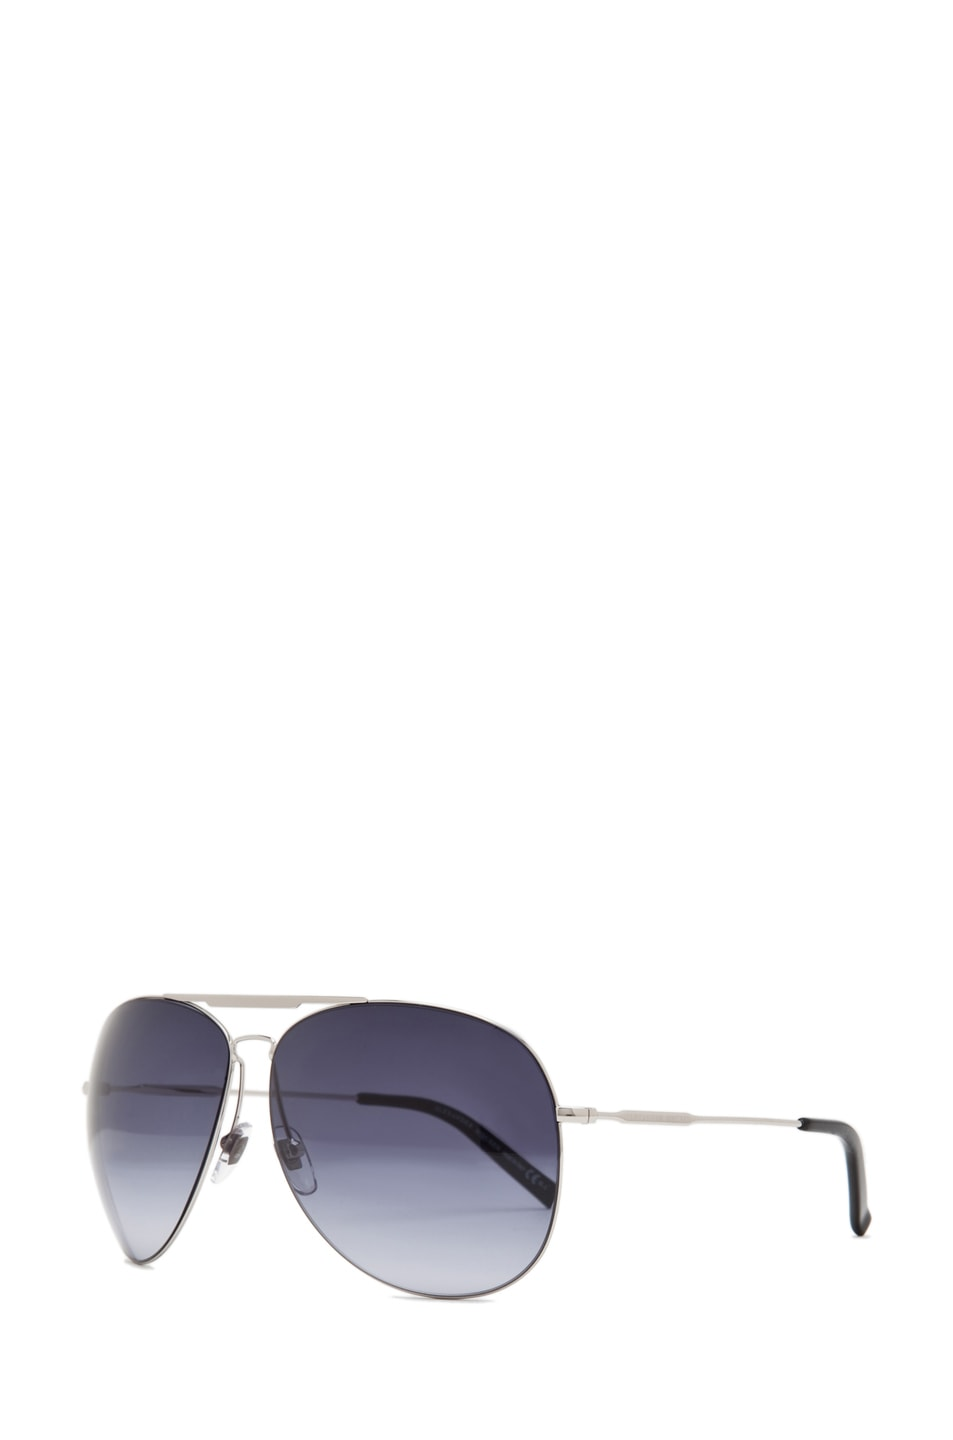 Image 2 of Alexander McQueen 4173 Sunglasses in Palladium